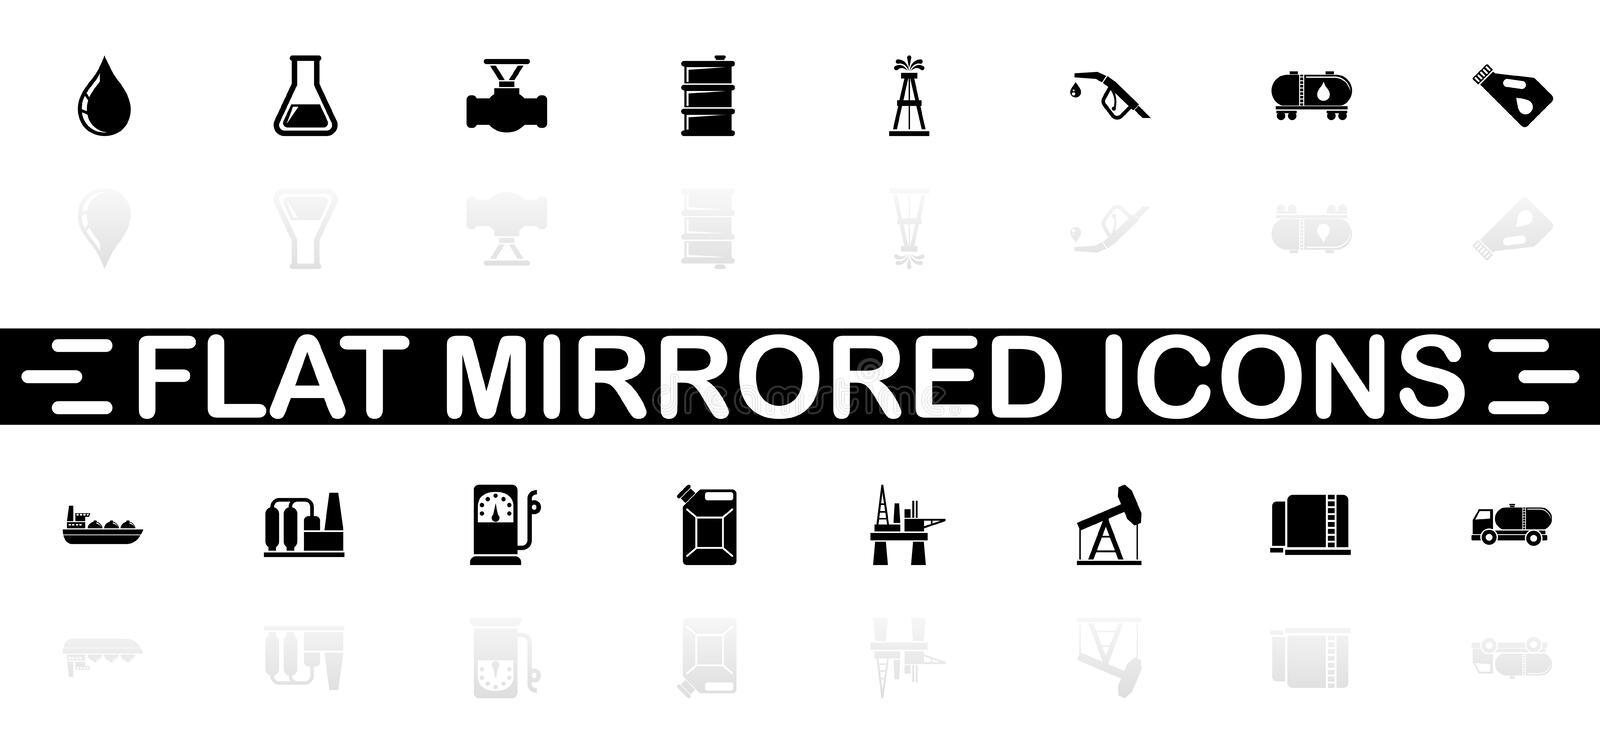 Oil - Flat Vector Icons. Oil icons - Black symbol on white background. Simple illustration. Flat Vector Icon. Mirror Reflection Shadow. Can be used in logo, web vector illustration